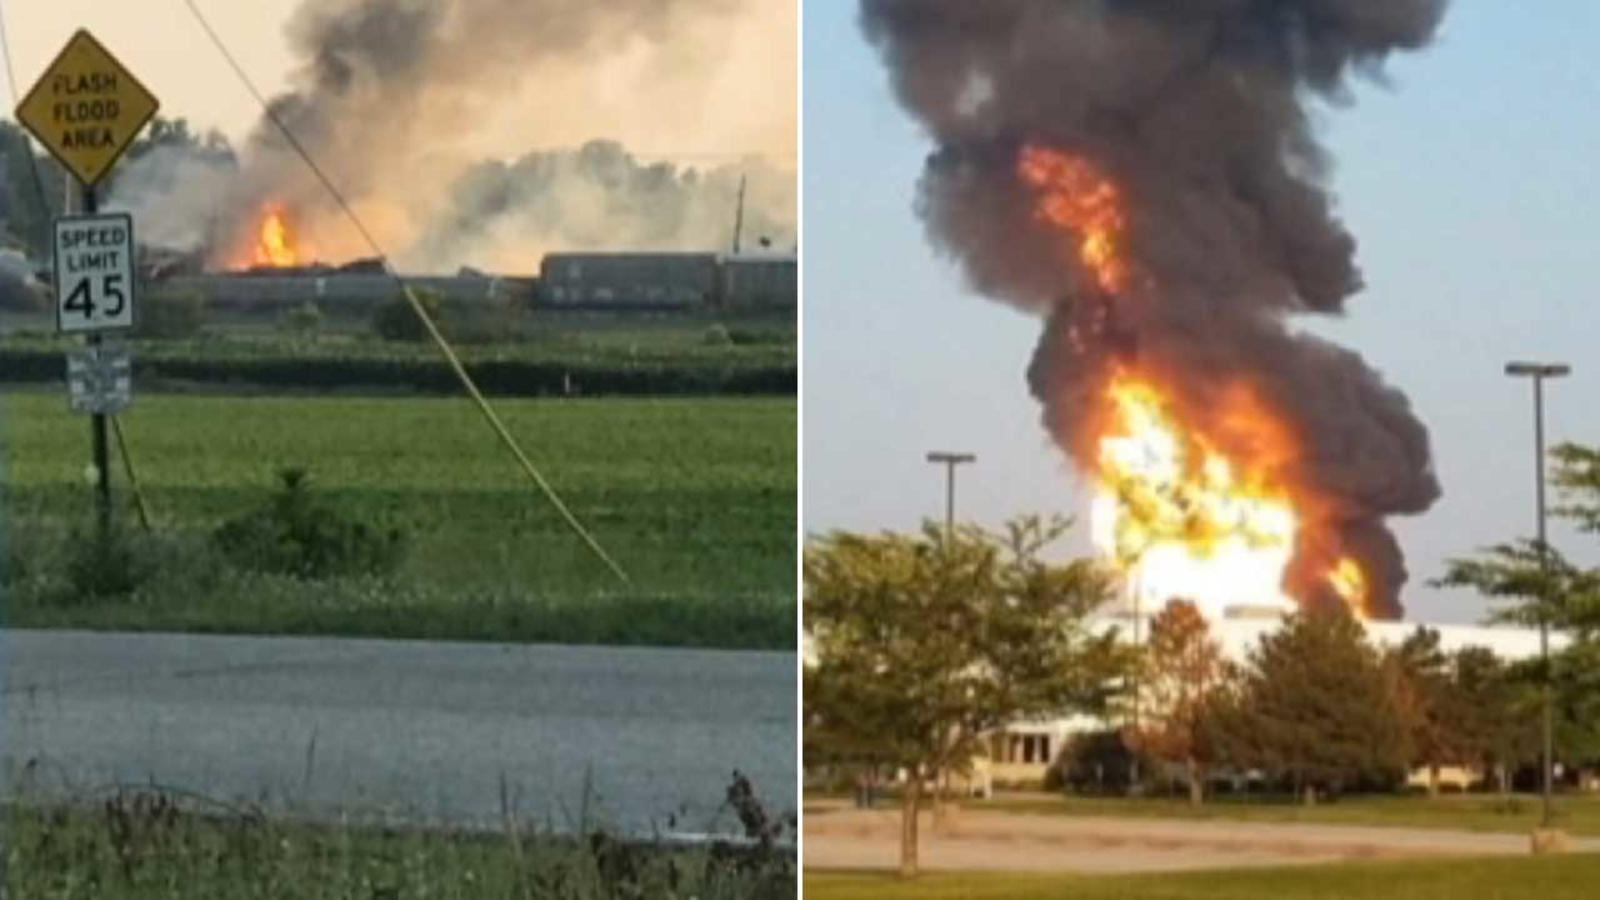 VIDEO: Indiana train derailment leads to explosion, emergency